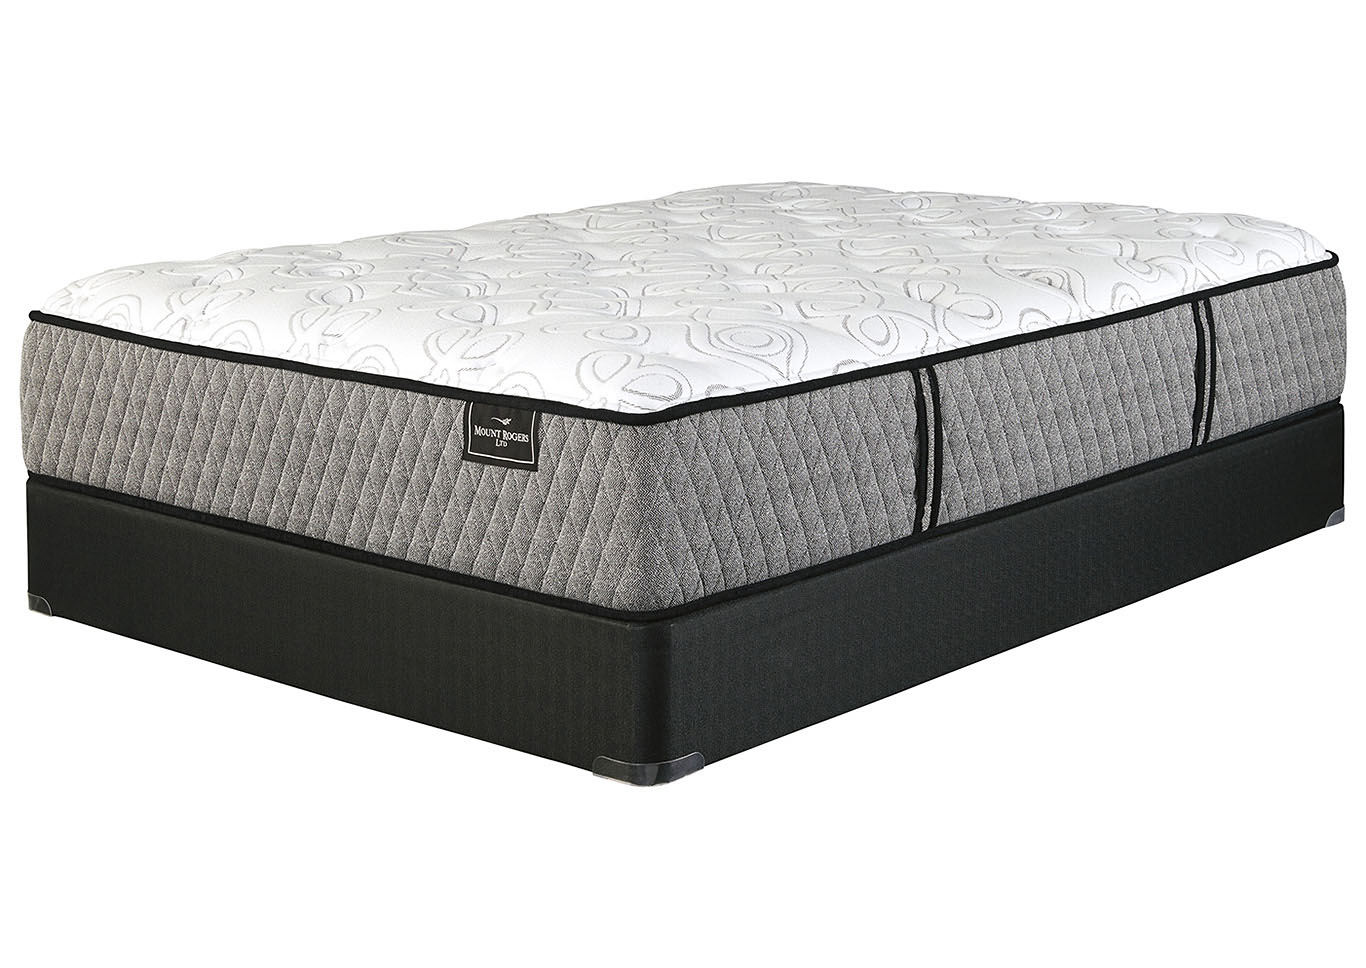 Mt. Rogers Limited Plush White Queen Mattress,Sierra Sleep by Ashley